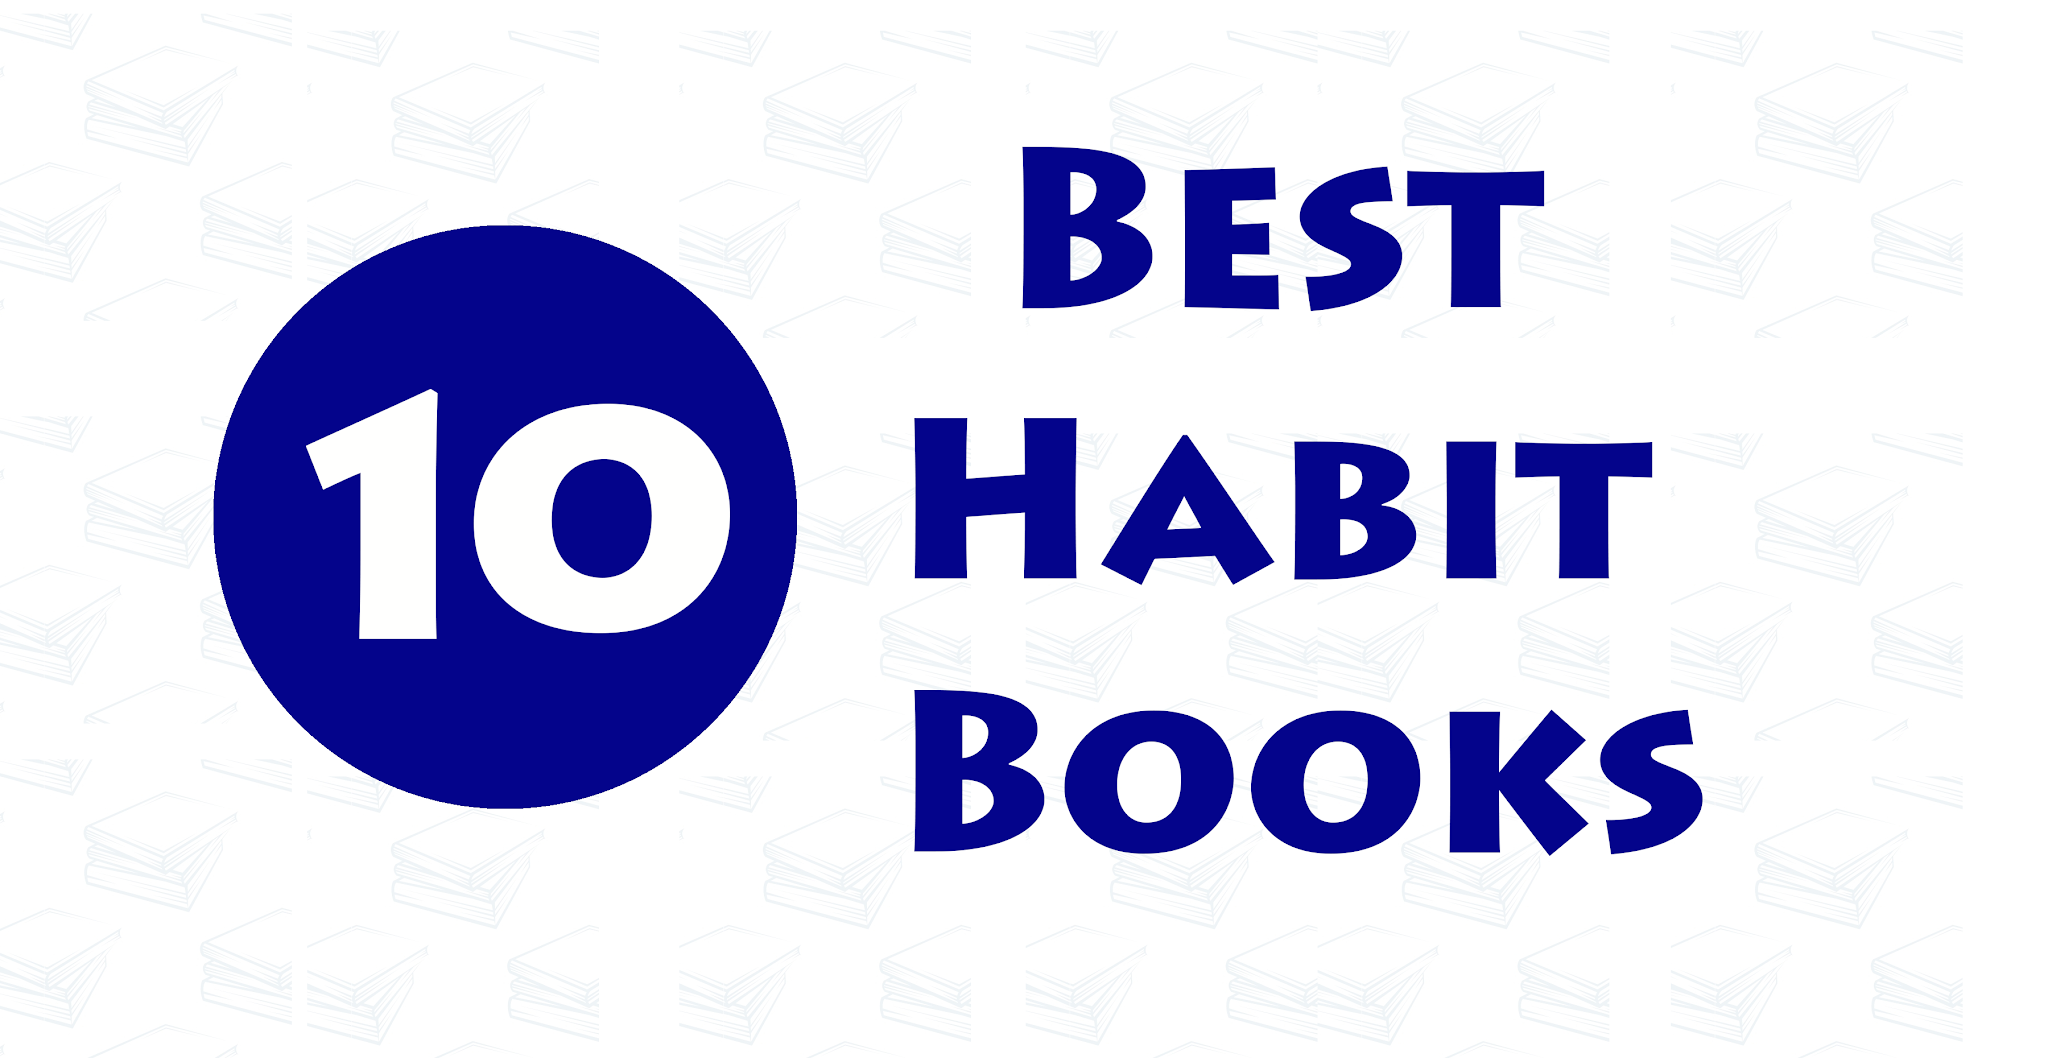 10 Best Habit Books to Read